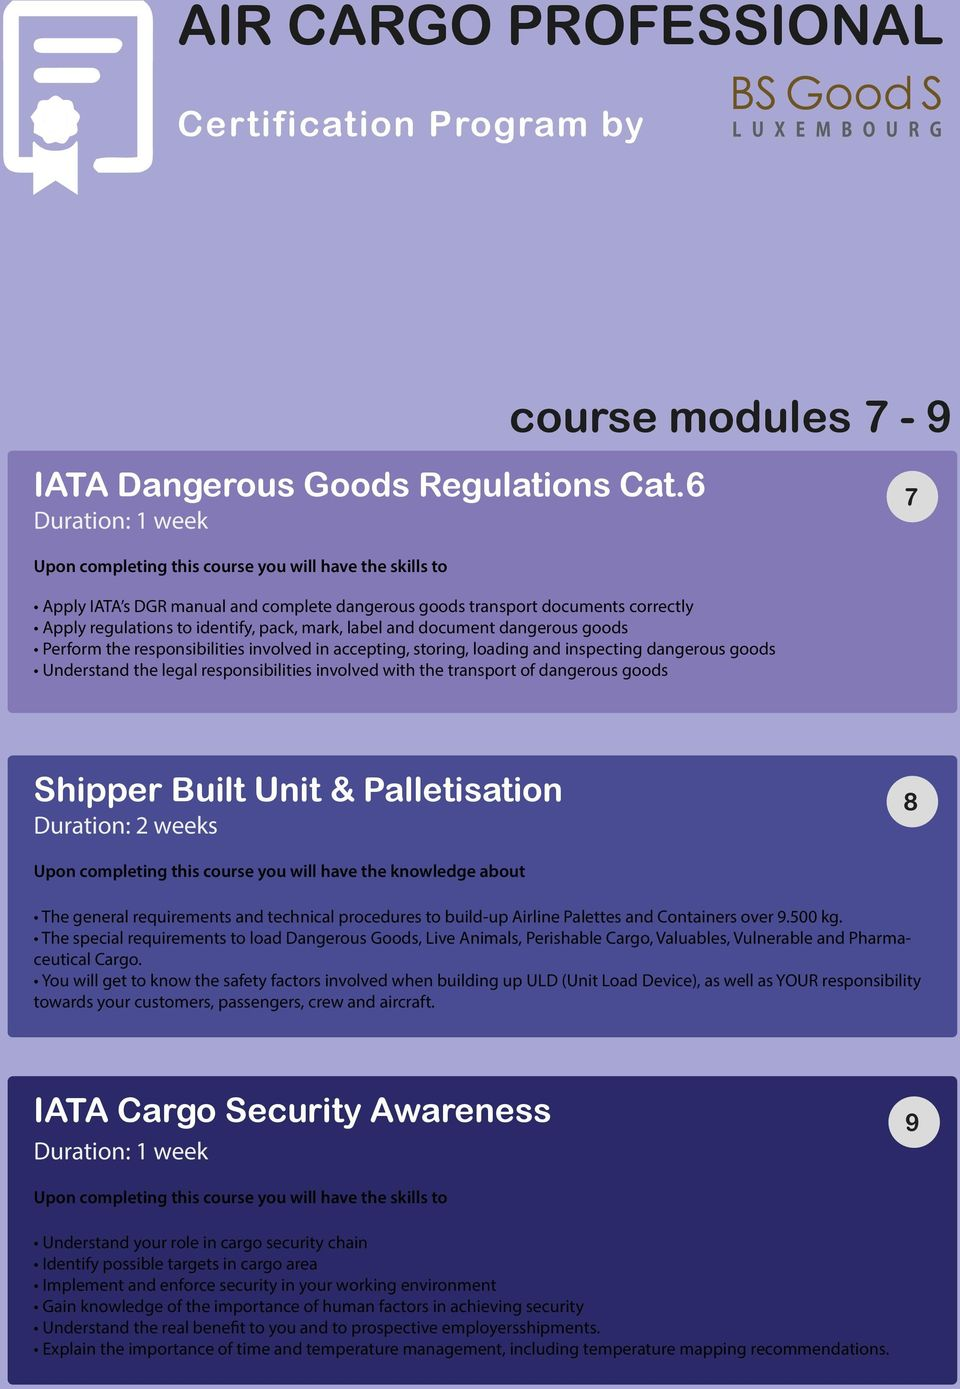 involved in accepting, storing, loading and inspecting dangerous goods Understand the legal responsibilities involved with the transport of dangerous goods Shipper Built Unit & Palletisation